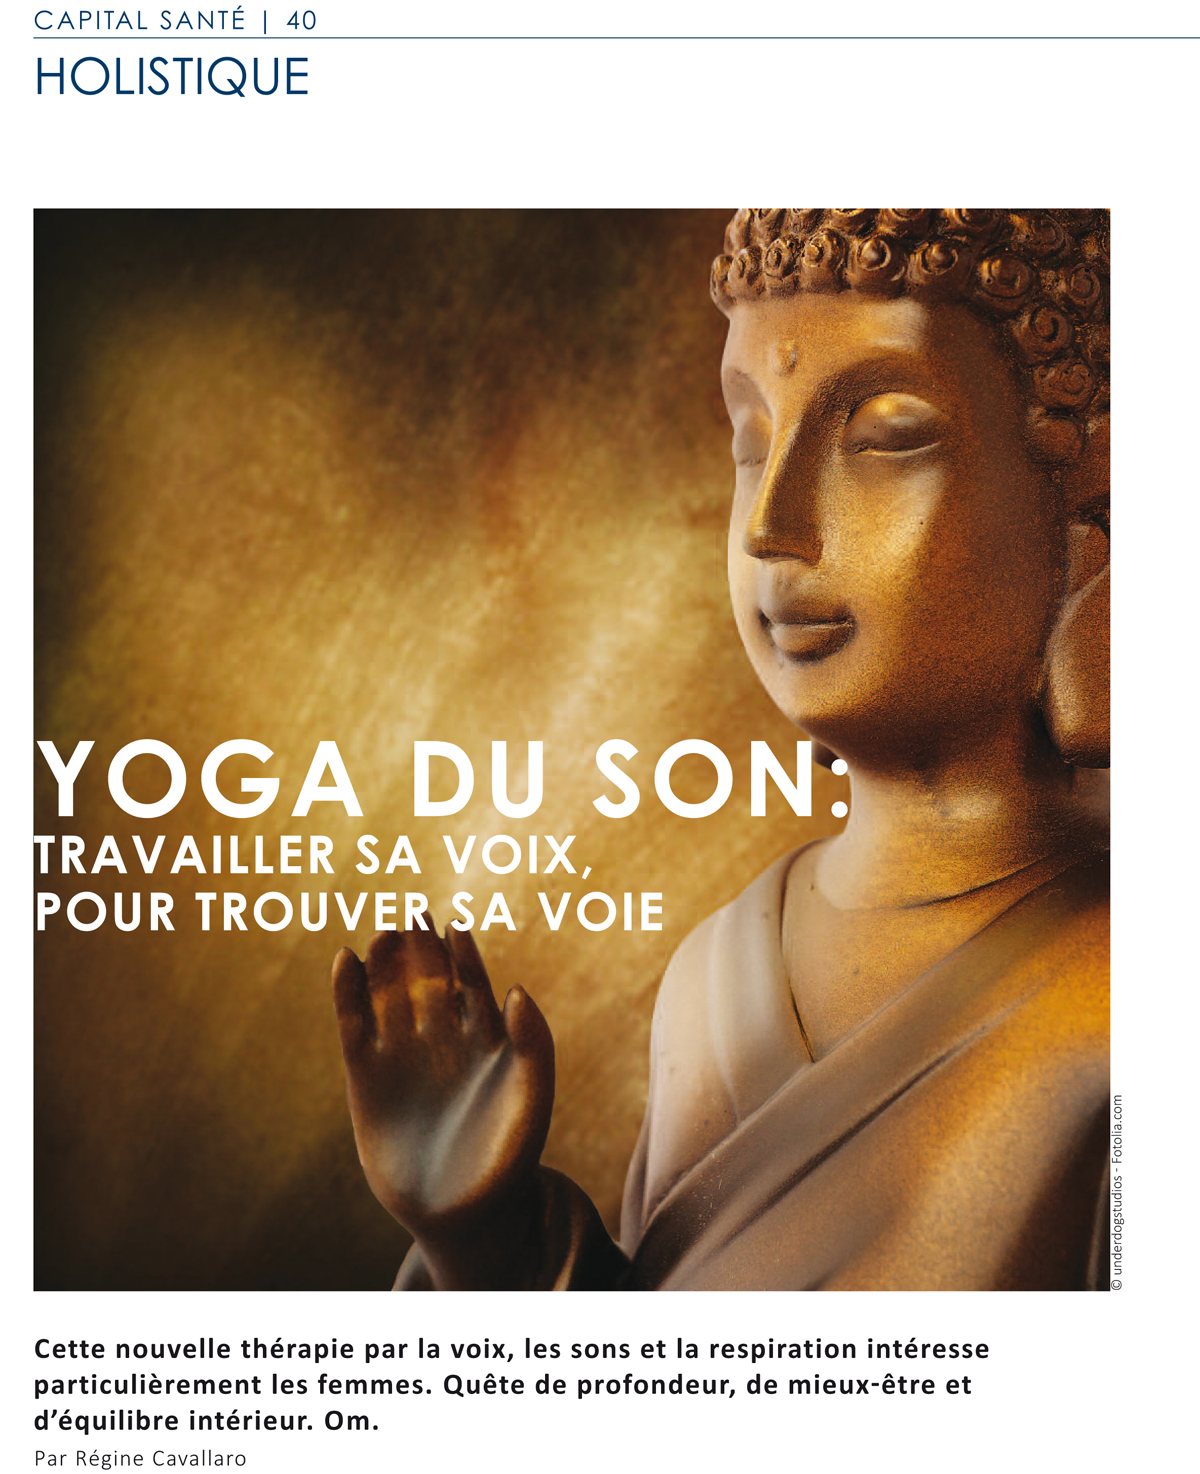 cs05_yoga_du_son-1_web